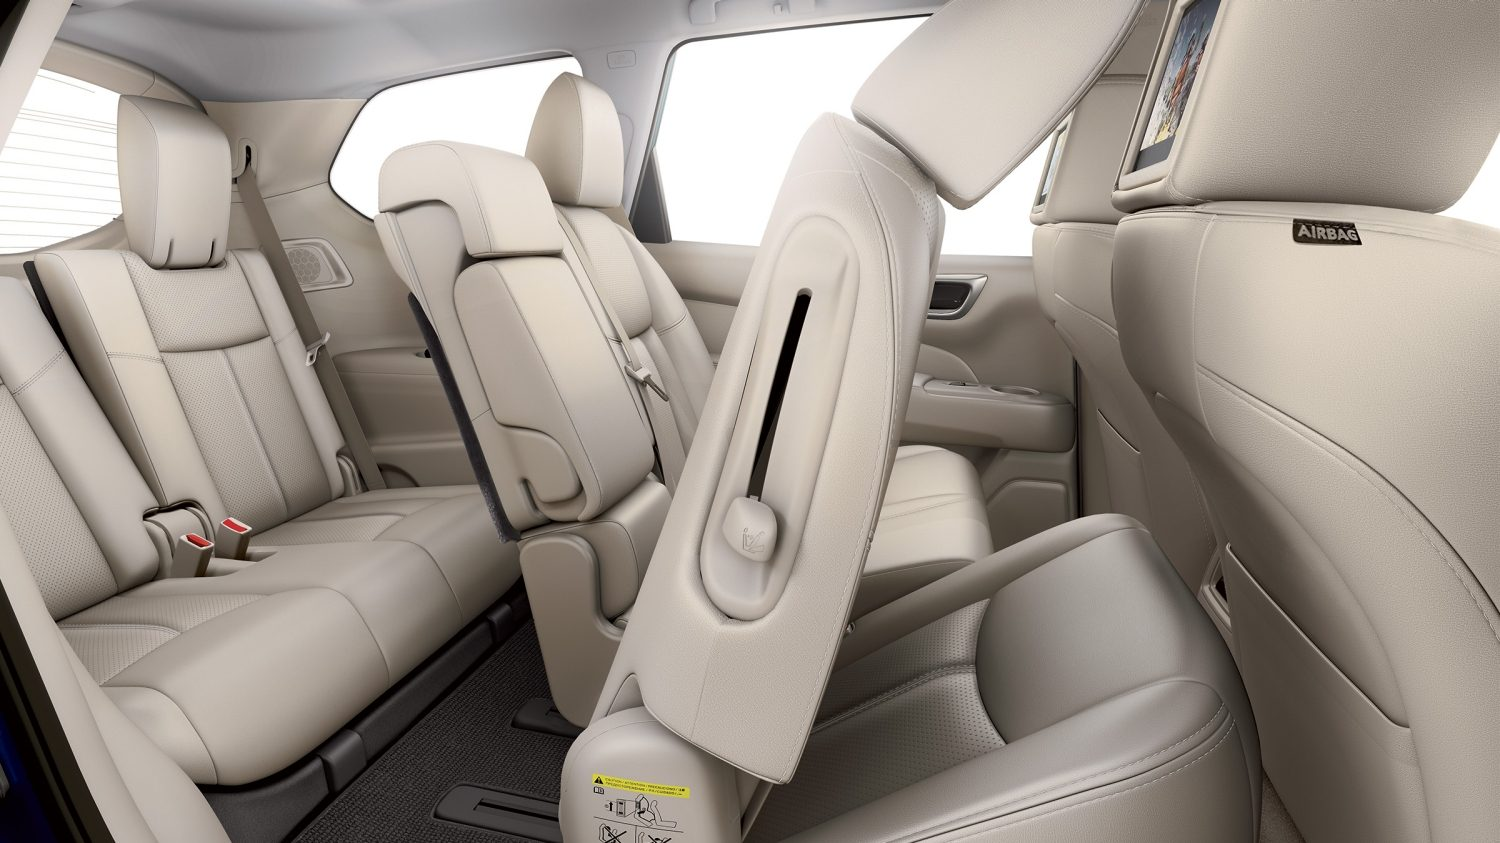 Nissan Pathfinder sliding seats, showing EZ flex seating system with easy access to third row